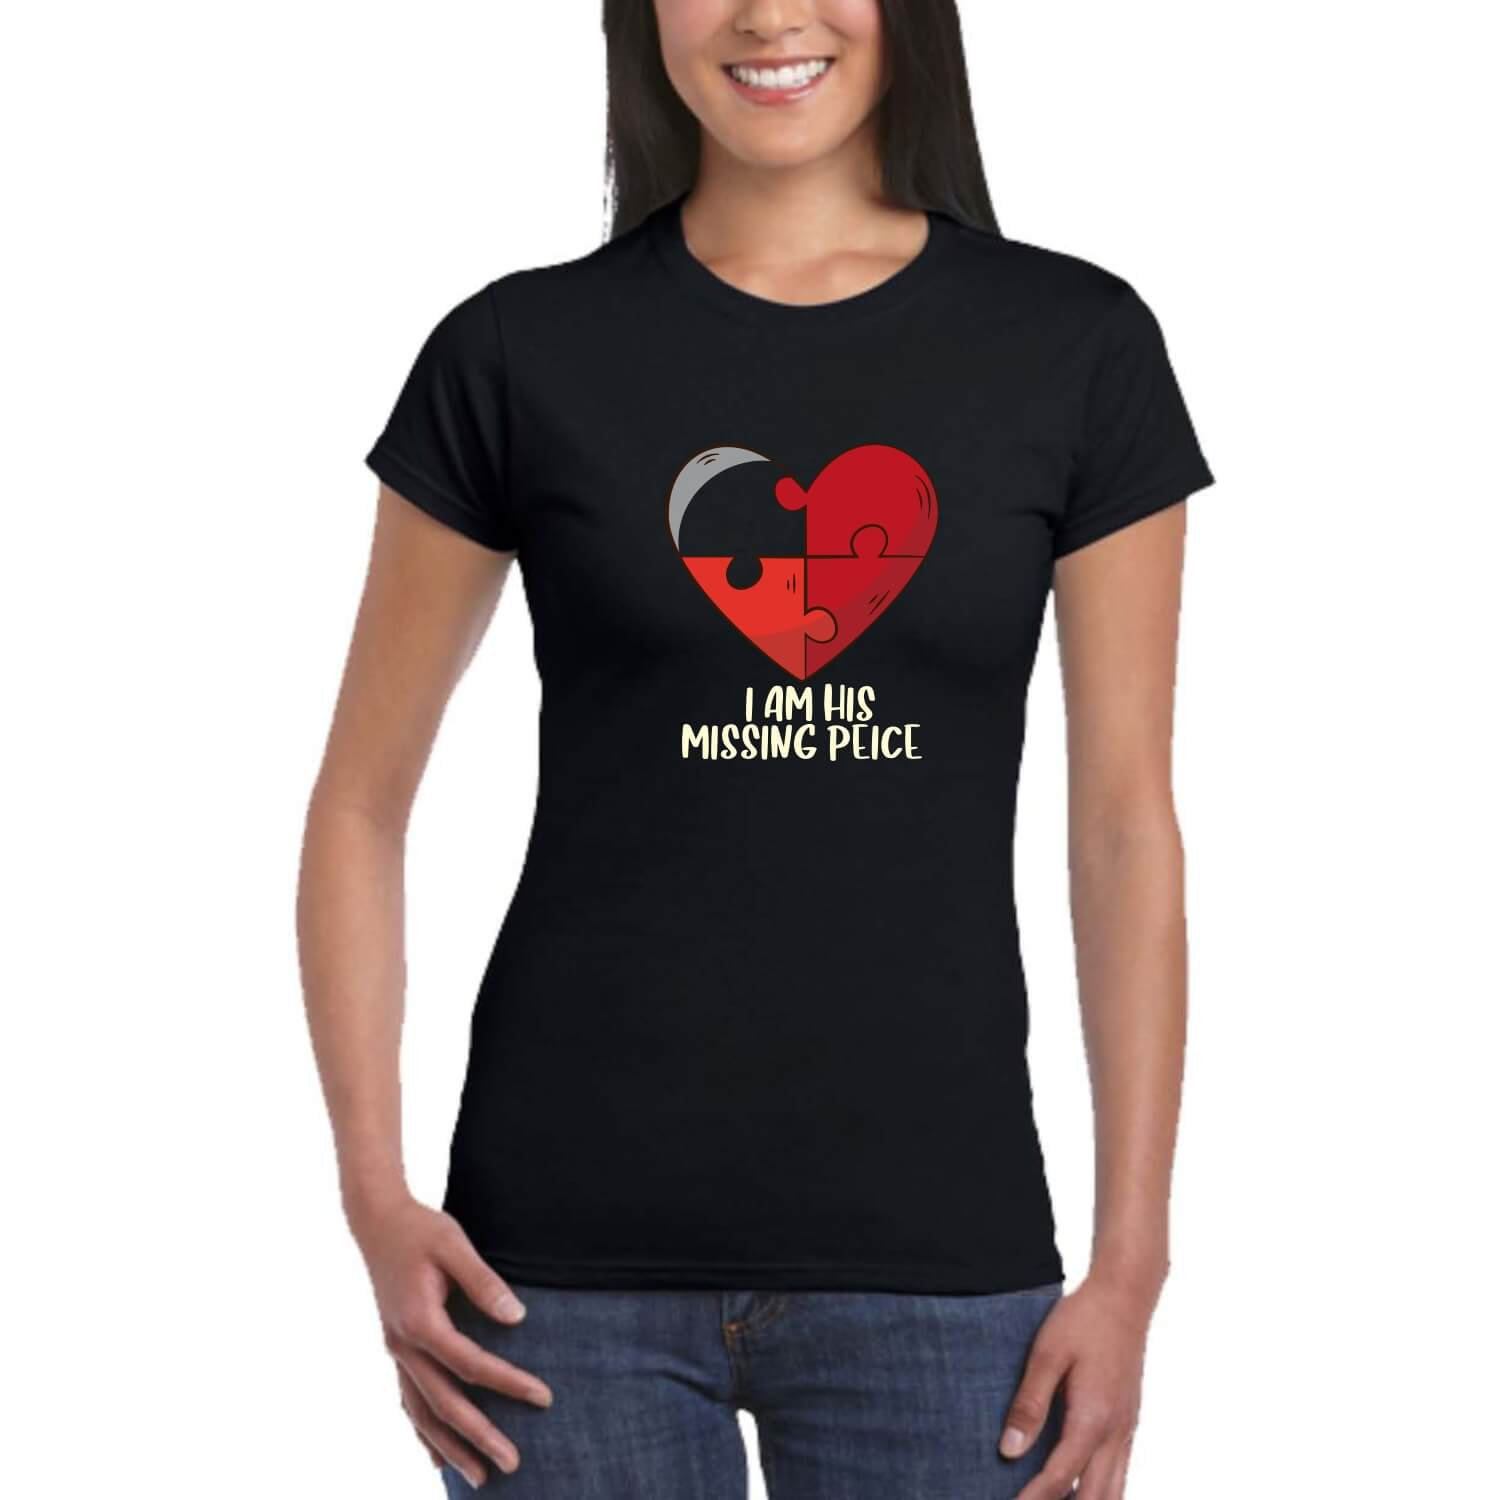 8efa1625b His Her Missing Piece Couple T-shirt For Valentine Day Gifts | Giftsmate